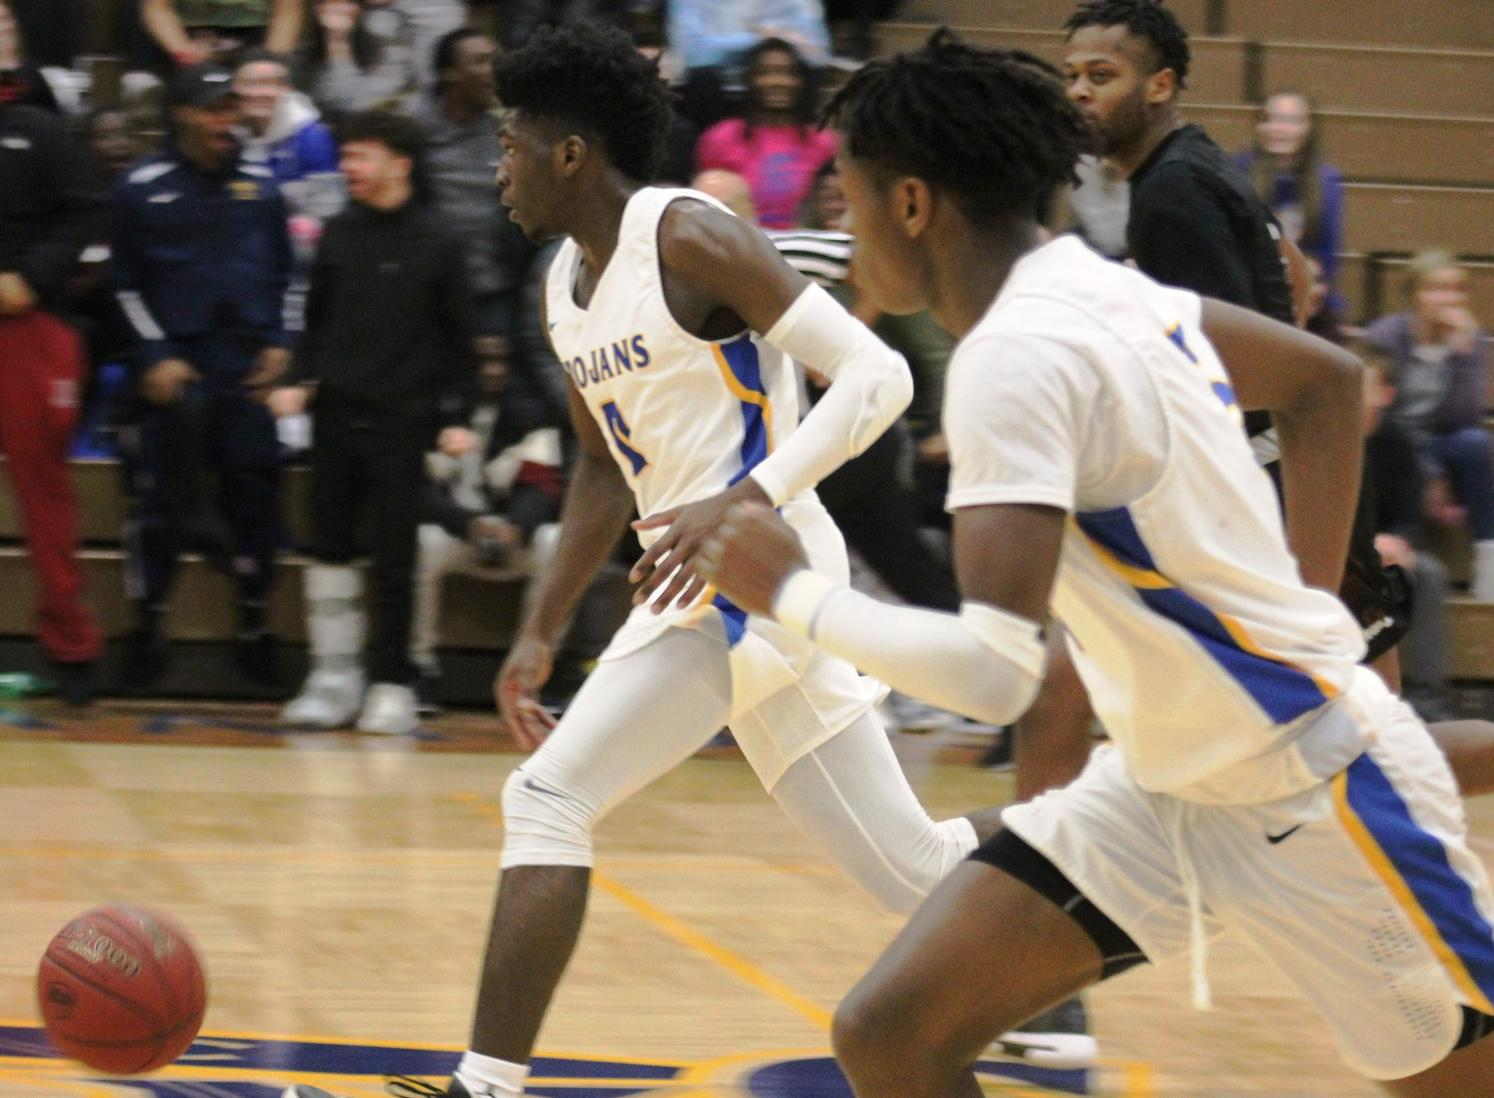 NIACC's James Harris and Quentin Hardrict run the fast break in Wednesday's victory.